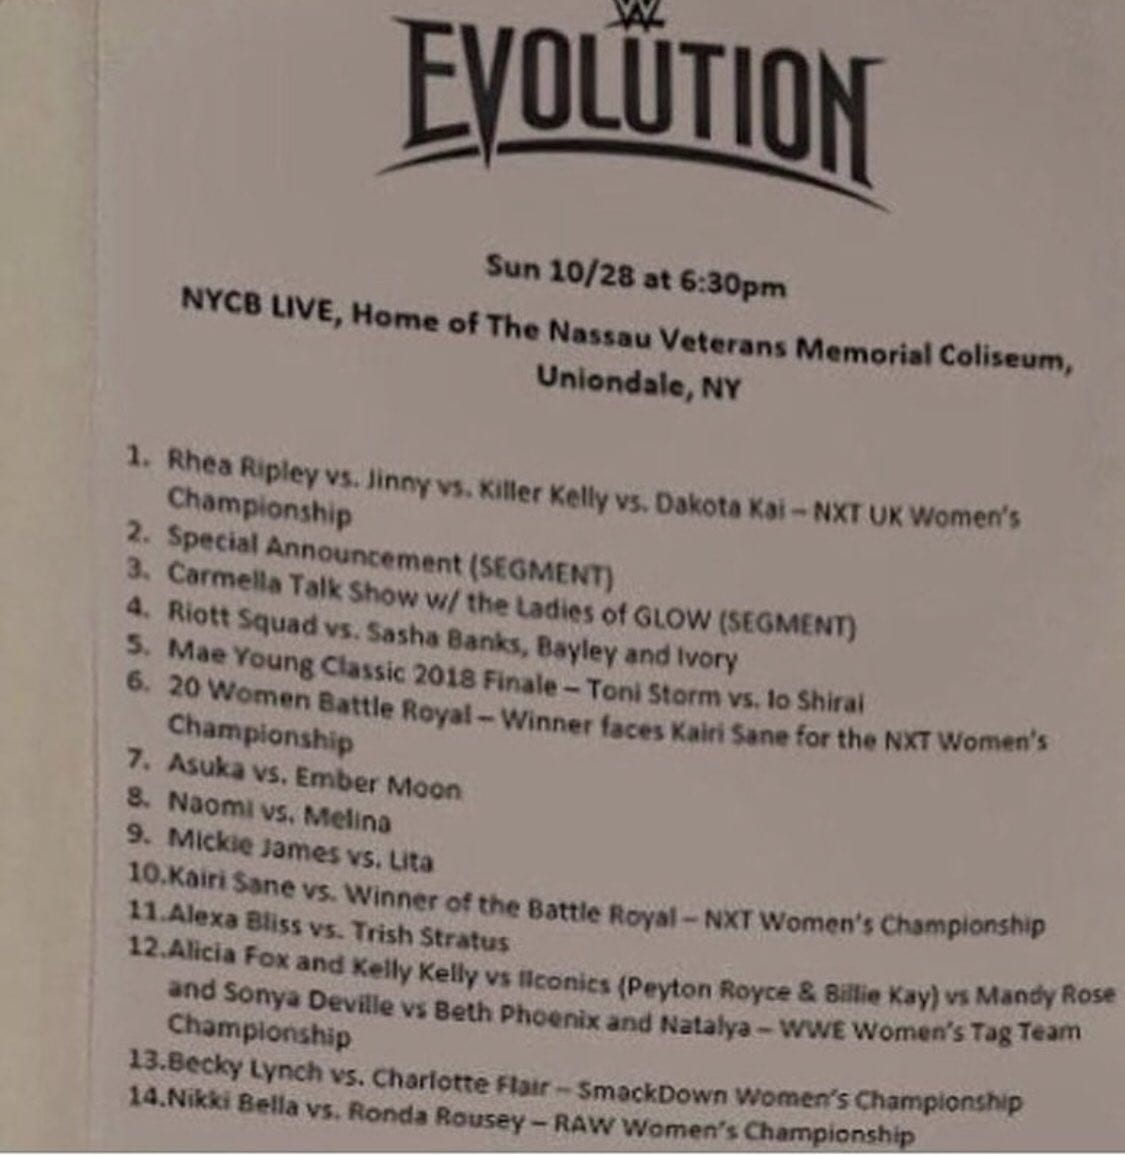 WWE Evolution 2018 Match-Card Leaked